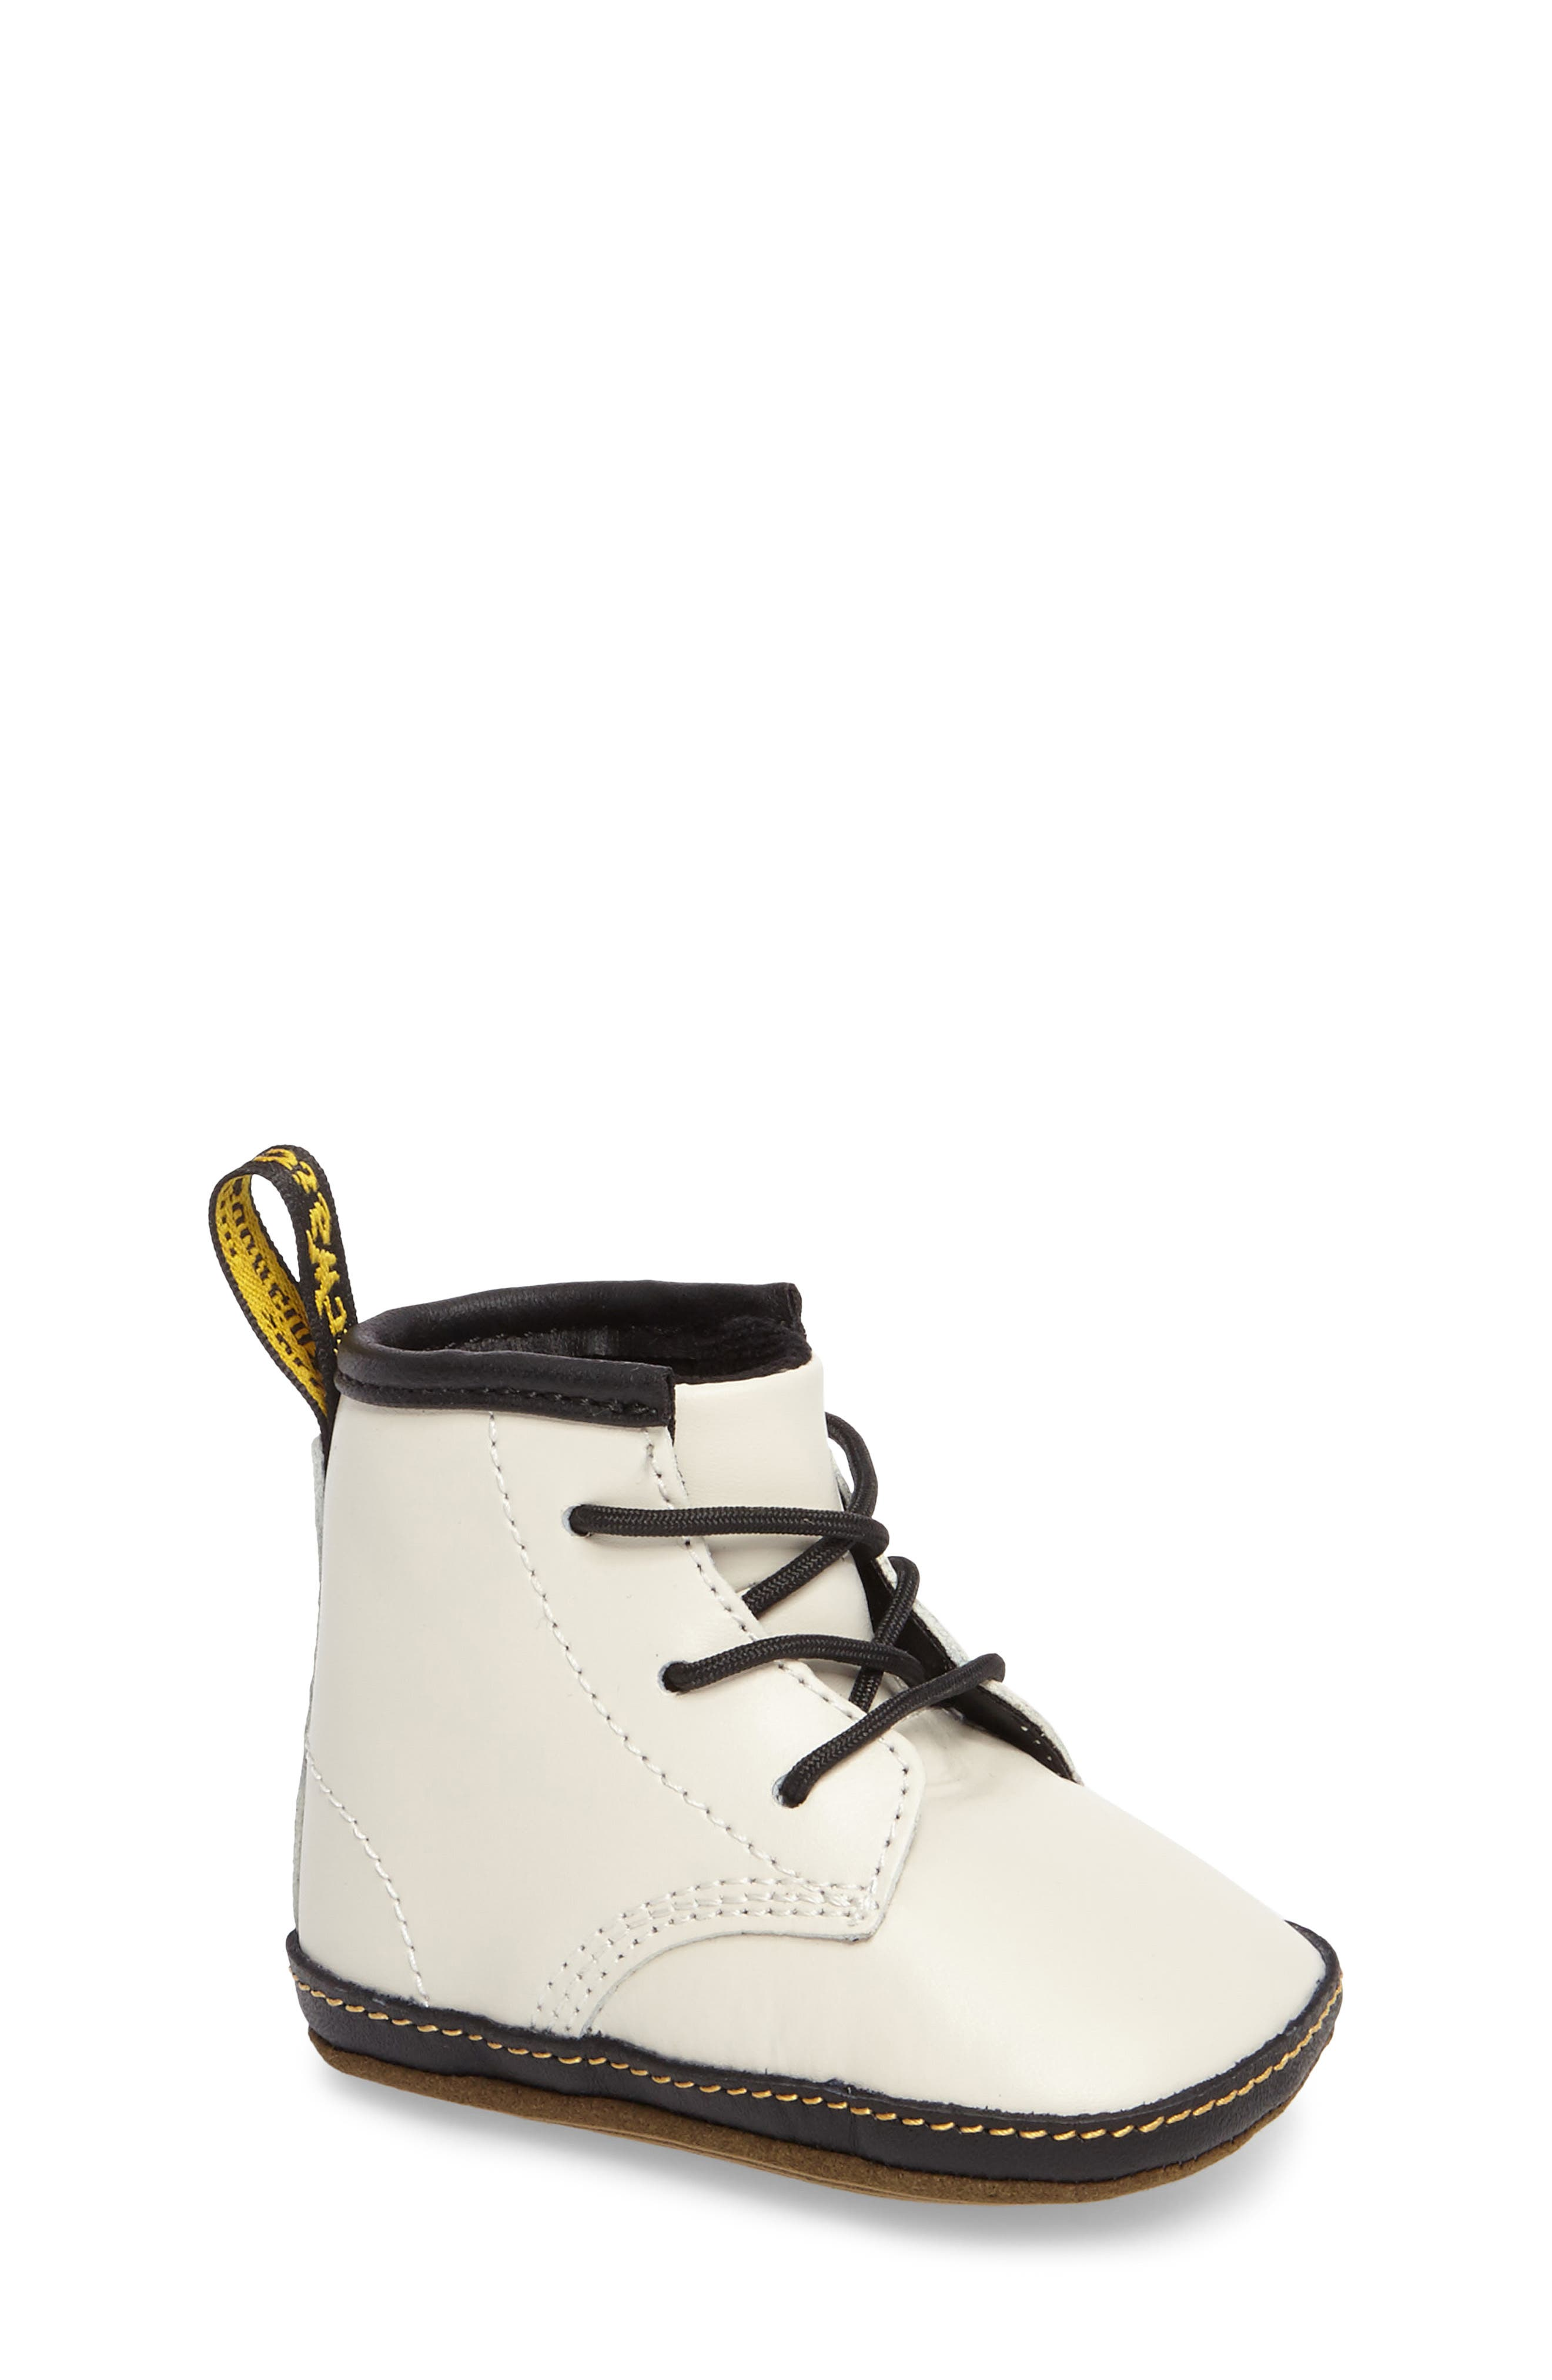 Alternate Image 1 Selected - Dr. Martens Auburn Crib Bootie (Baby)